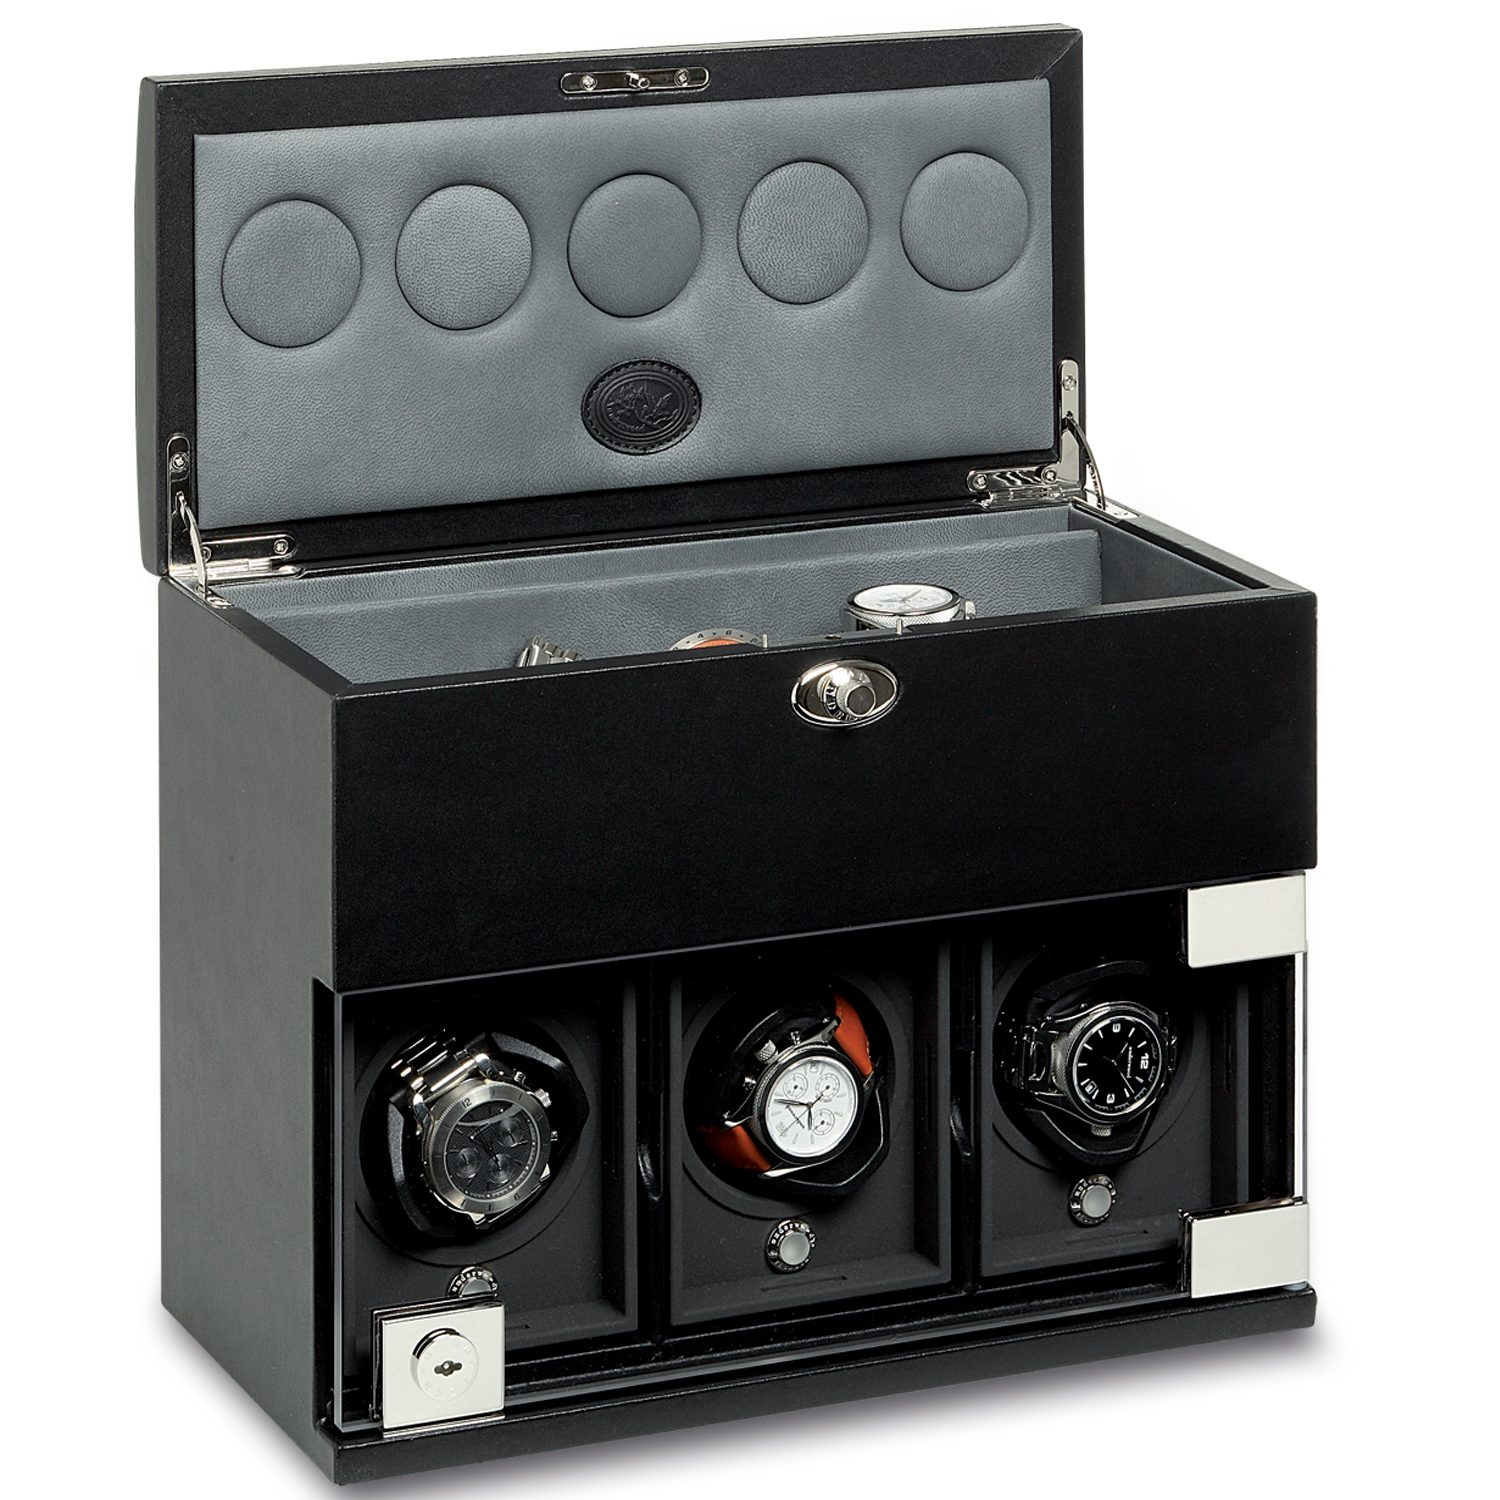 Watch-Winder-for-3-watches-with-watch-storage-compartment